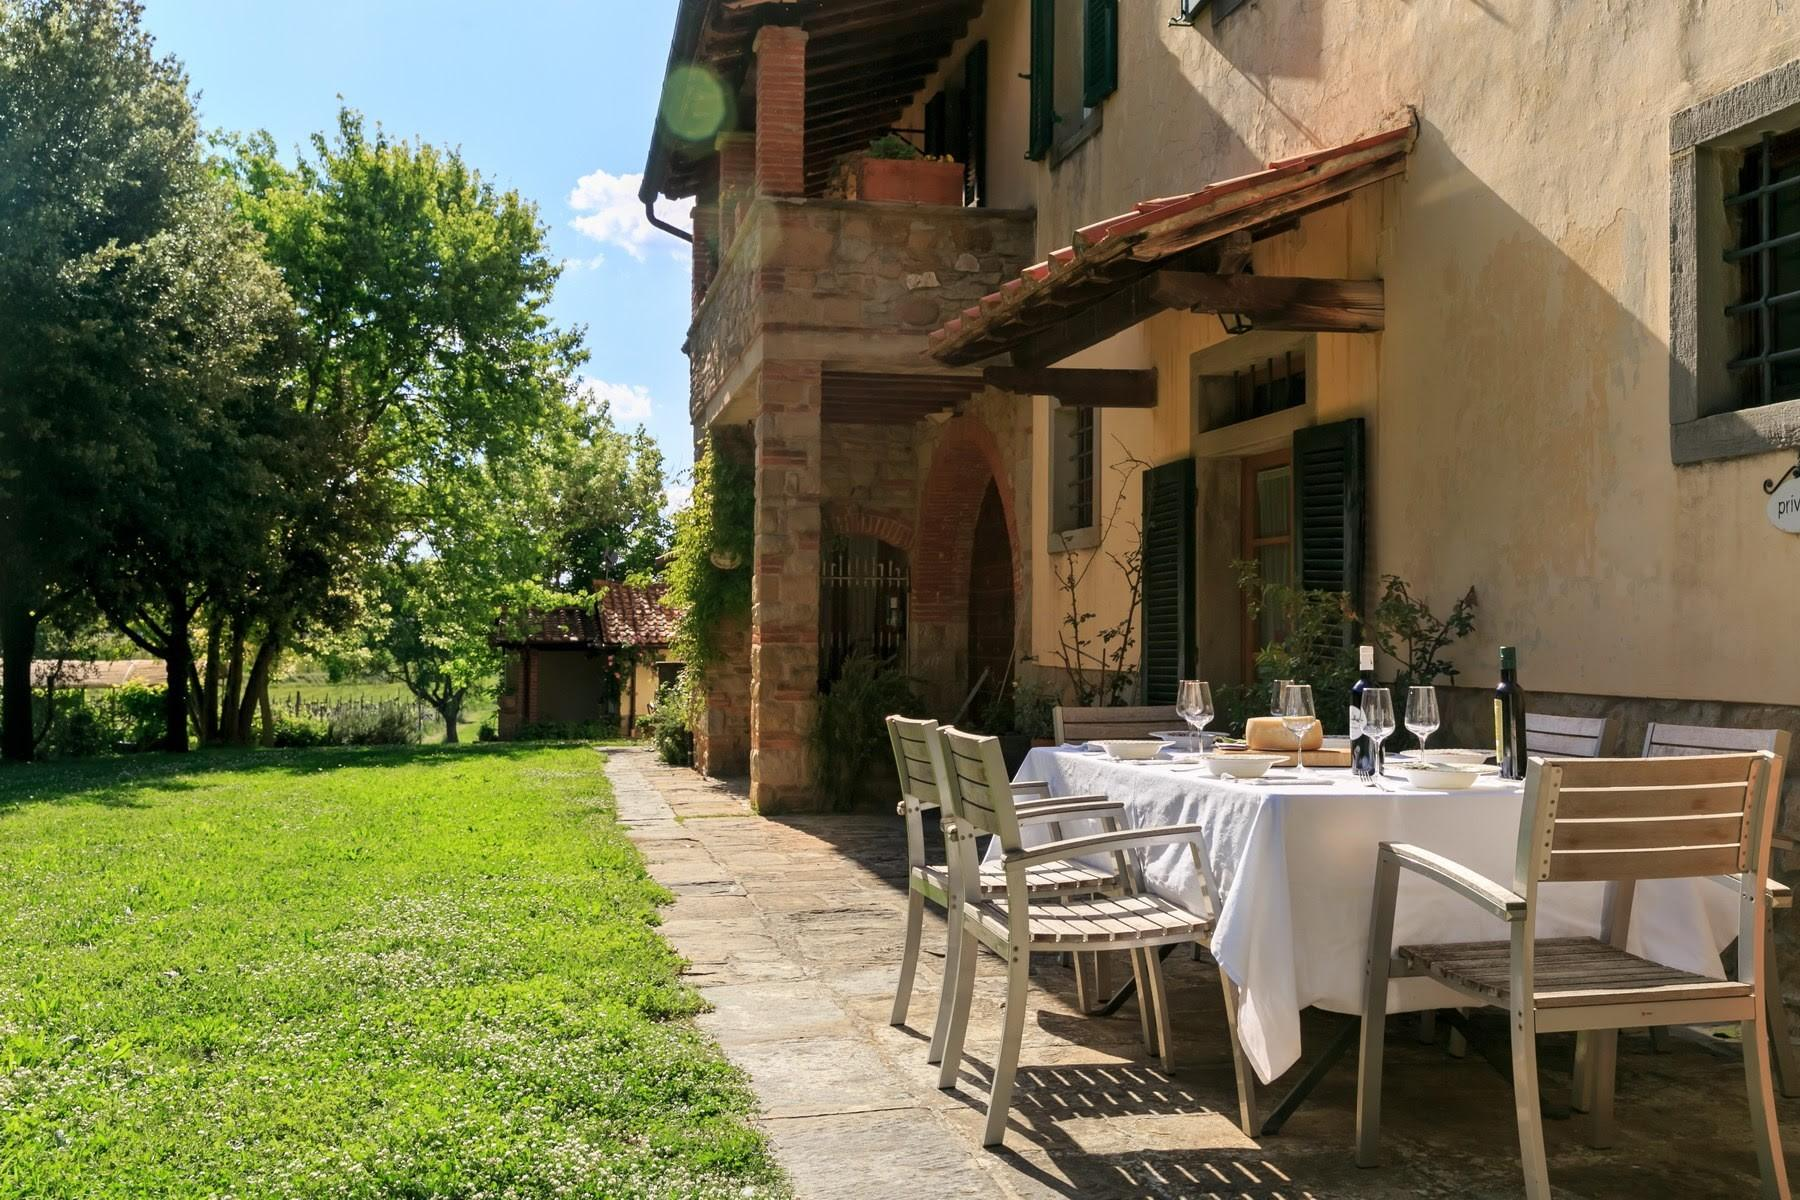 Agritourismo and Biodynamic farm in the heart of Tuscany with 15 ha of land. - 10